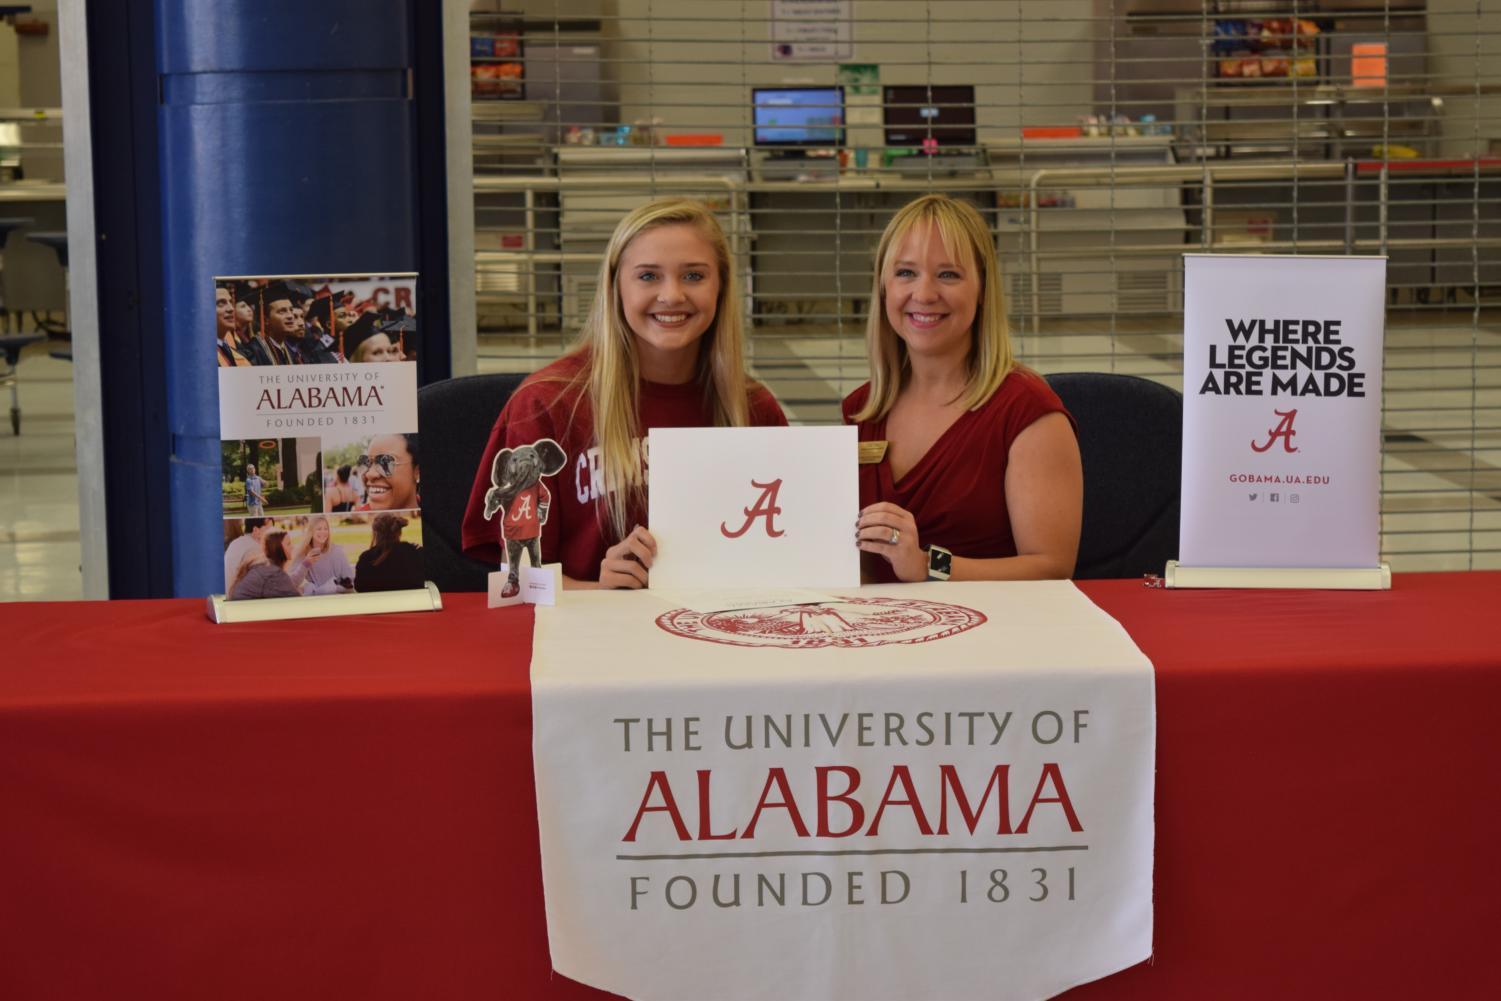 Kaeli+Dorsey+will+attend+the+University+of+Alabama+in+the+fall.+